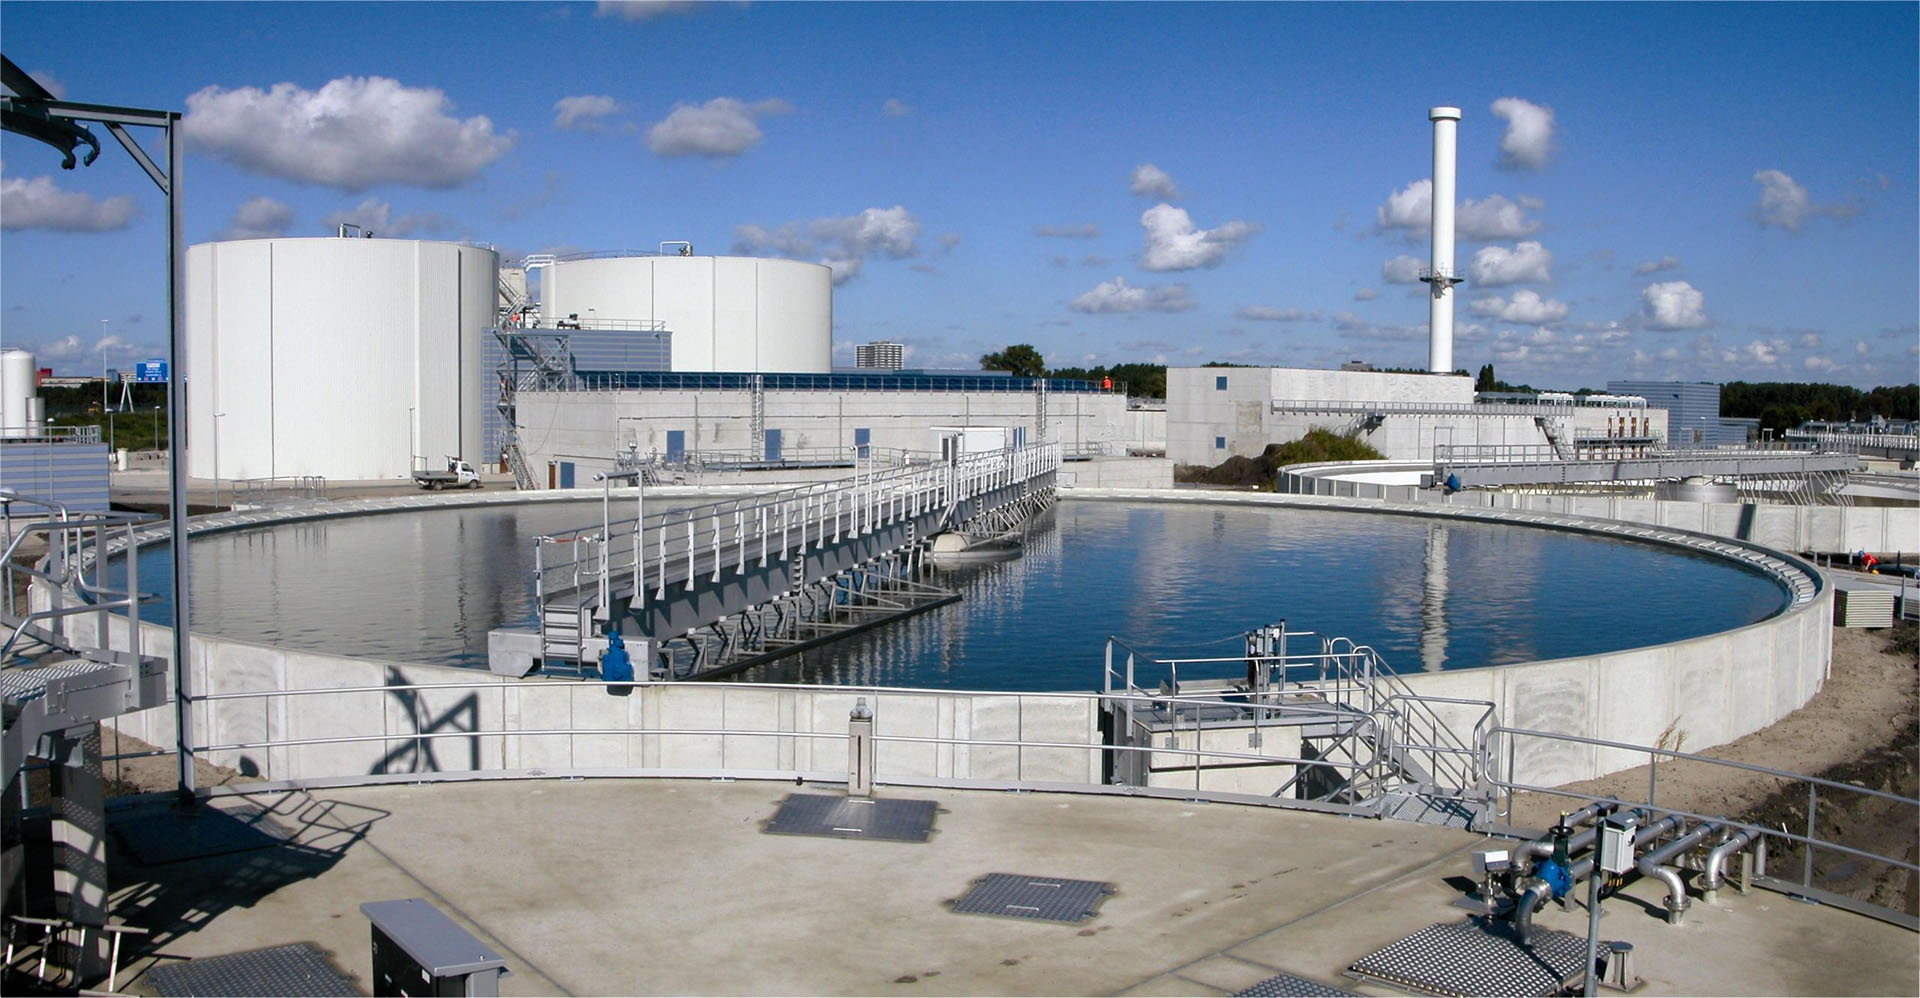 water treatment Water treatment solutions lenntech provides water treatment solutions for all type of applications, from domestic equipment to industrial turnkey plants up to 5000 m3/day our wide range of technologies and extended know-how in all water-related sectors will guarantee you a cost-efficient solution meeting your water quality requirements.